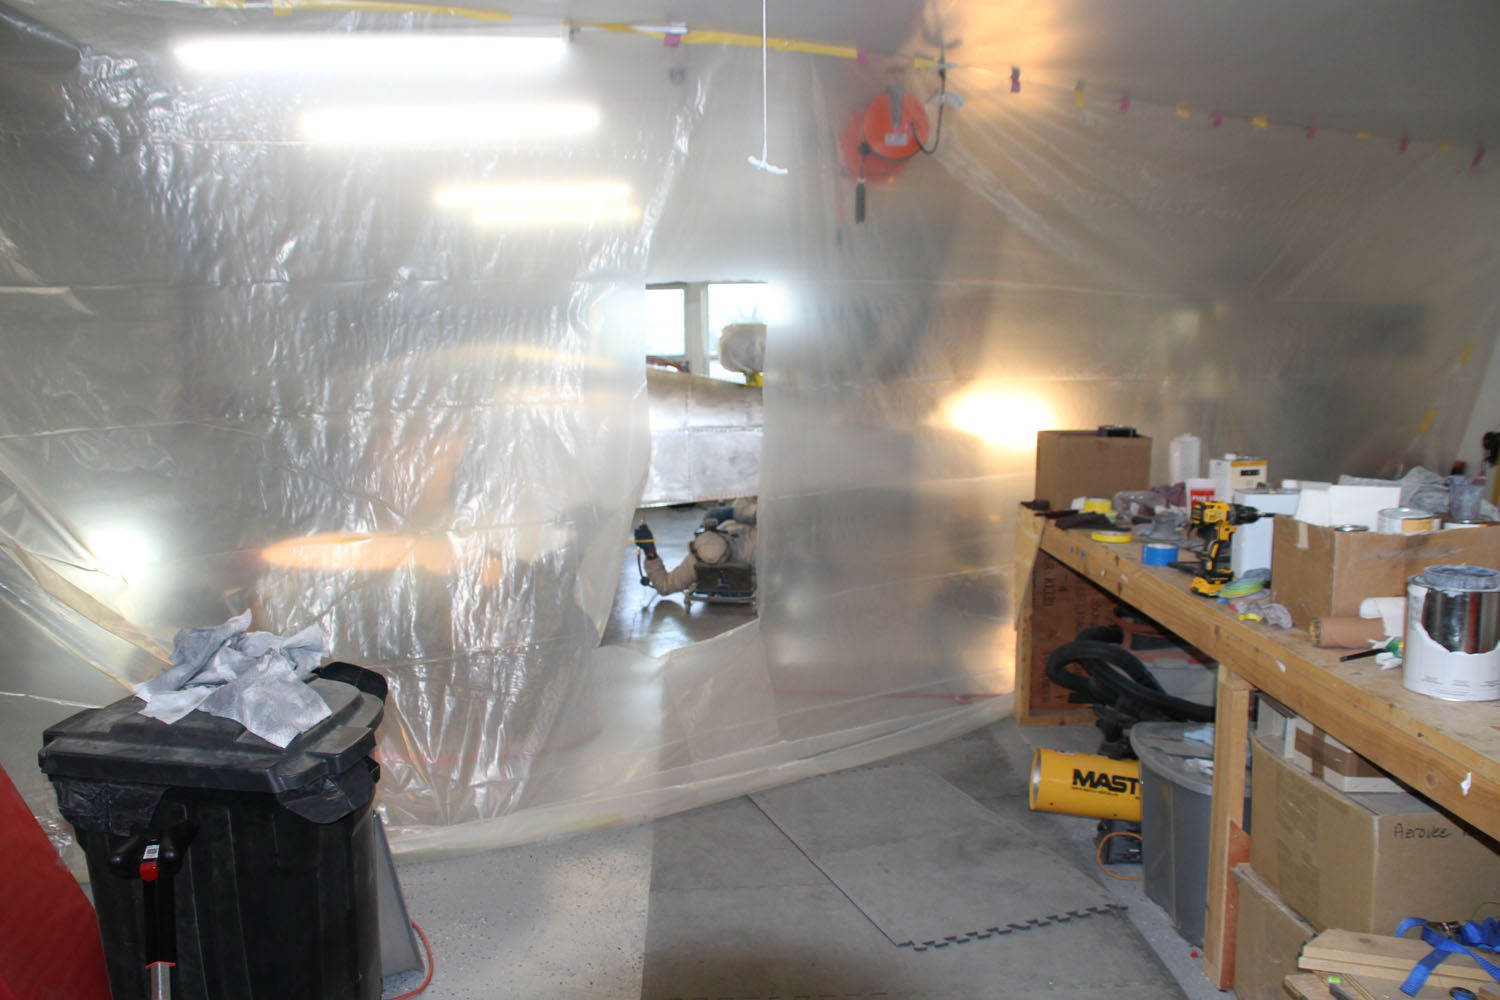 Paint booth installed, it was time to prime. Note the propane heater (yellow cylinder in lower right) heating the air before it is drawn through the paint booth.